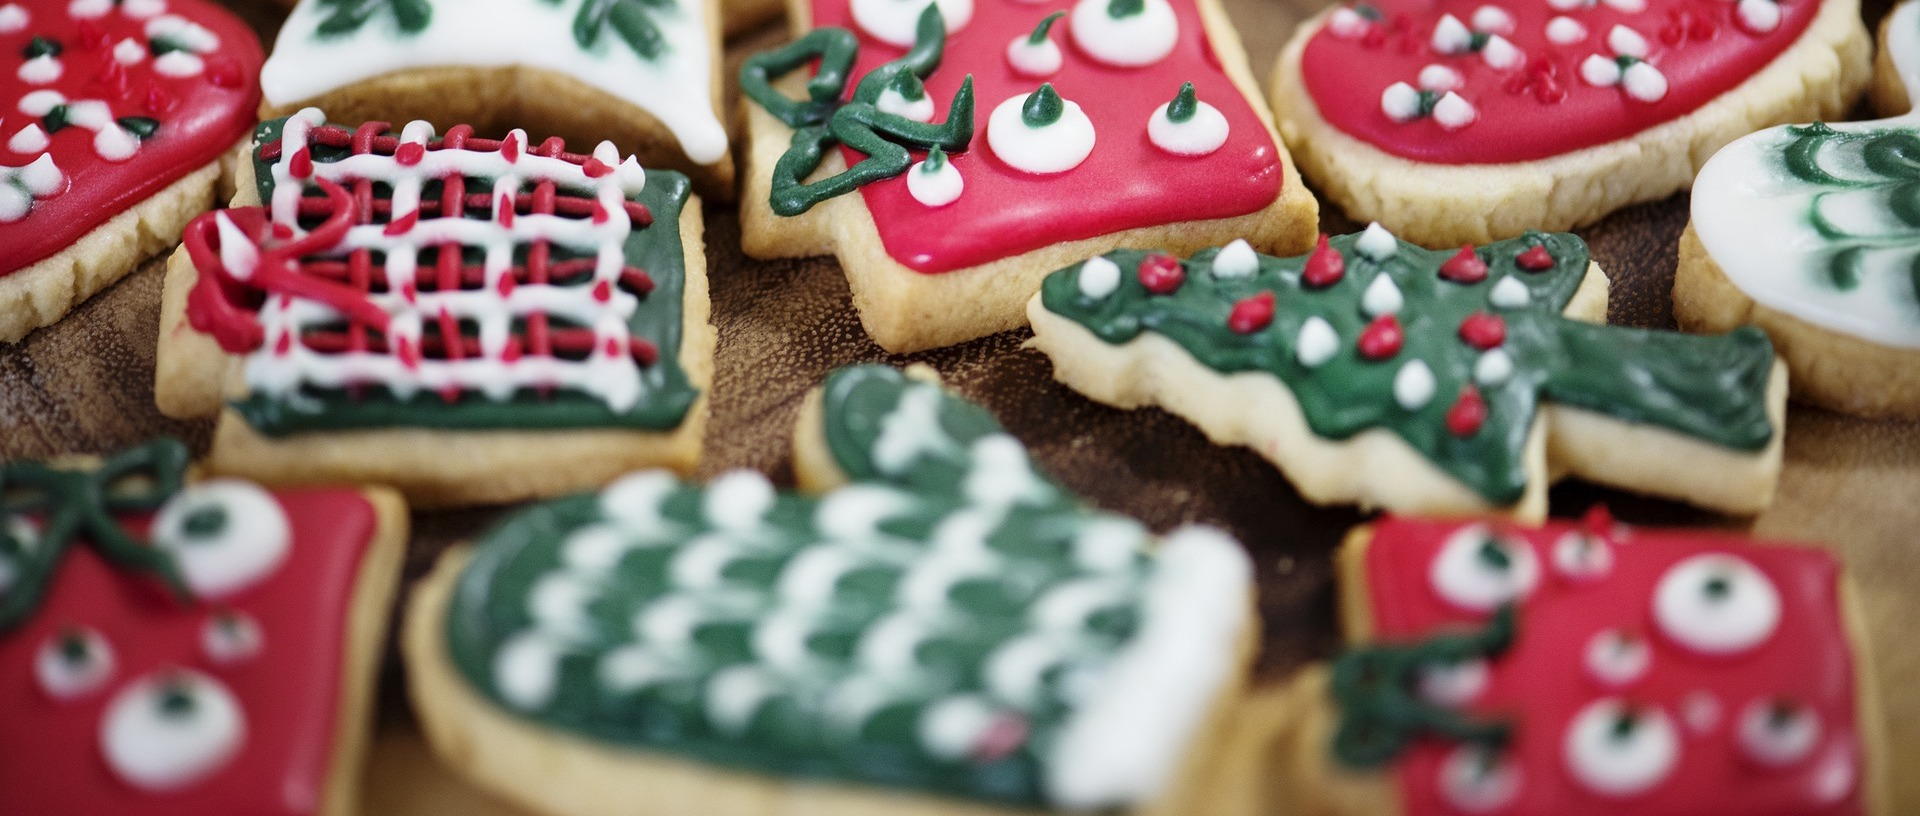 Braces-Friendly Holiday Recipes